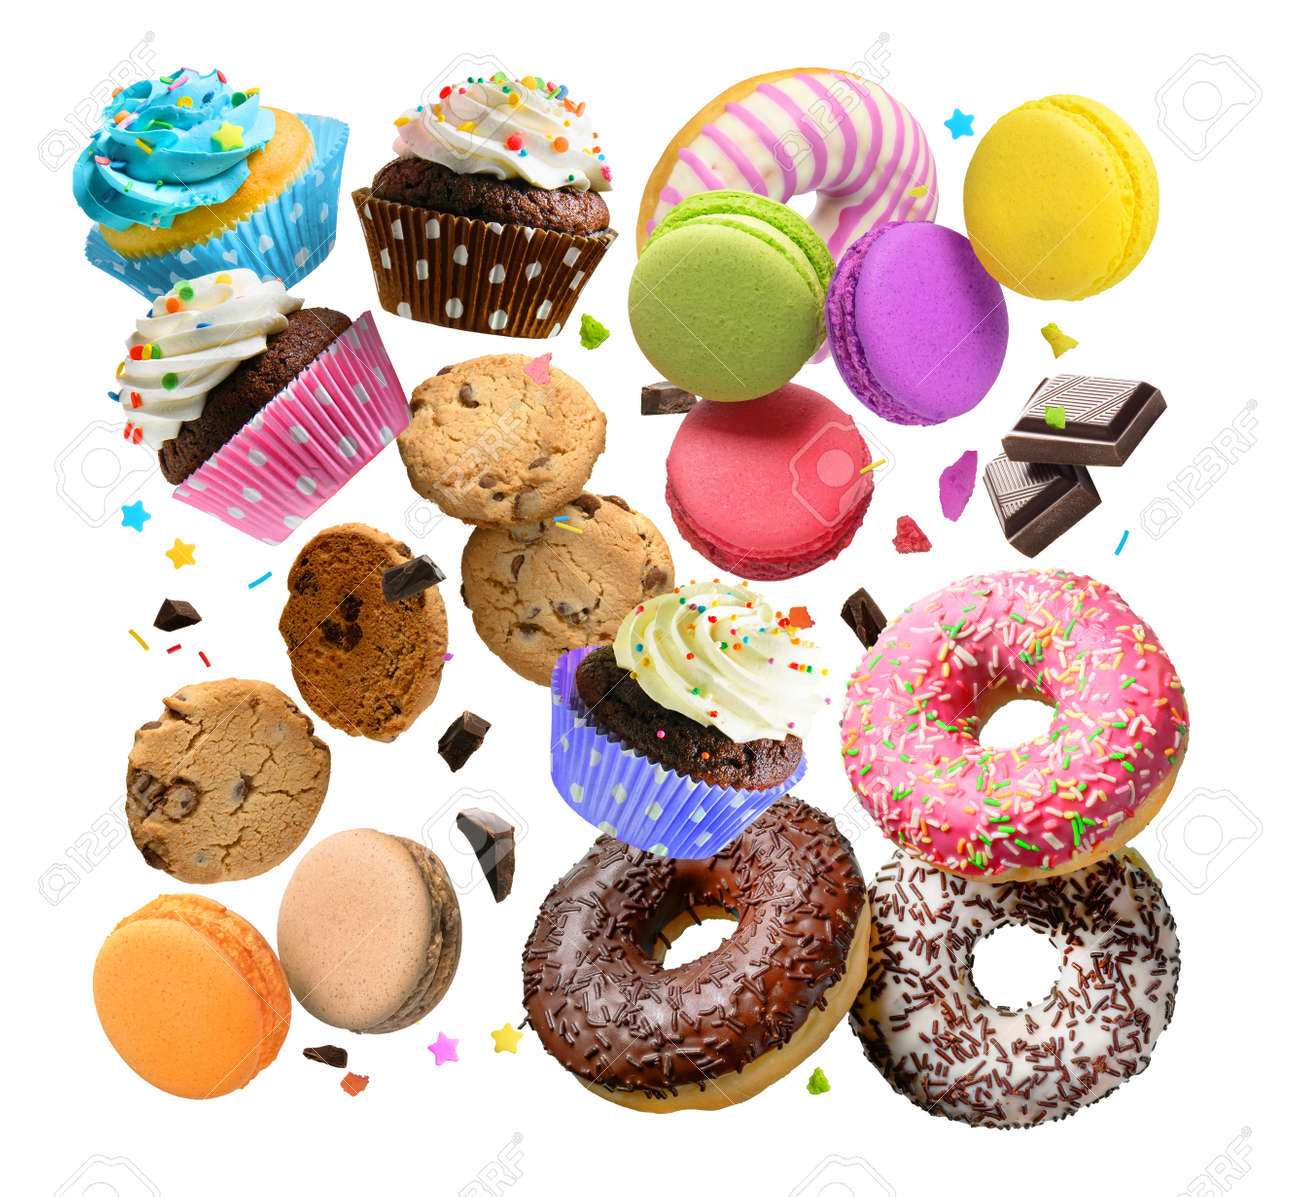 Confectionery and sweets collage. Donuts, cupcakes, cookies, macarons flying over white background. - 172307951